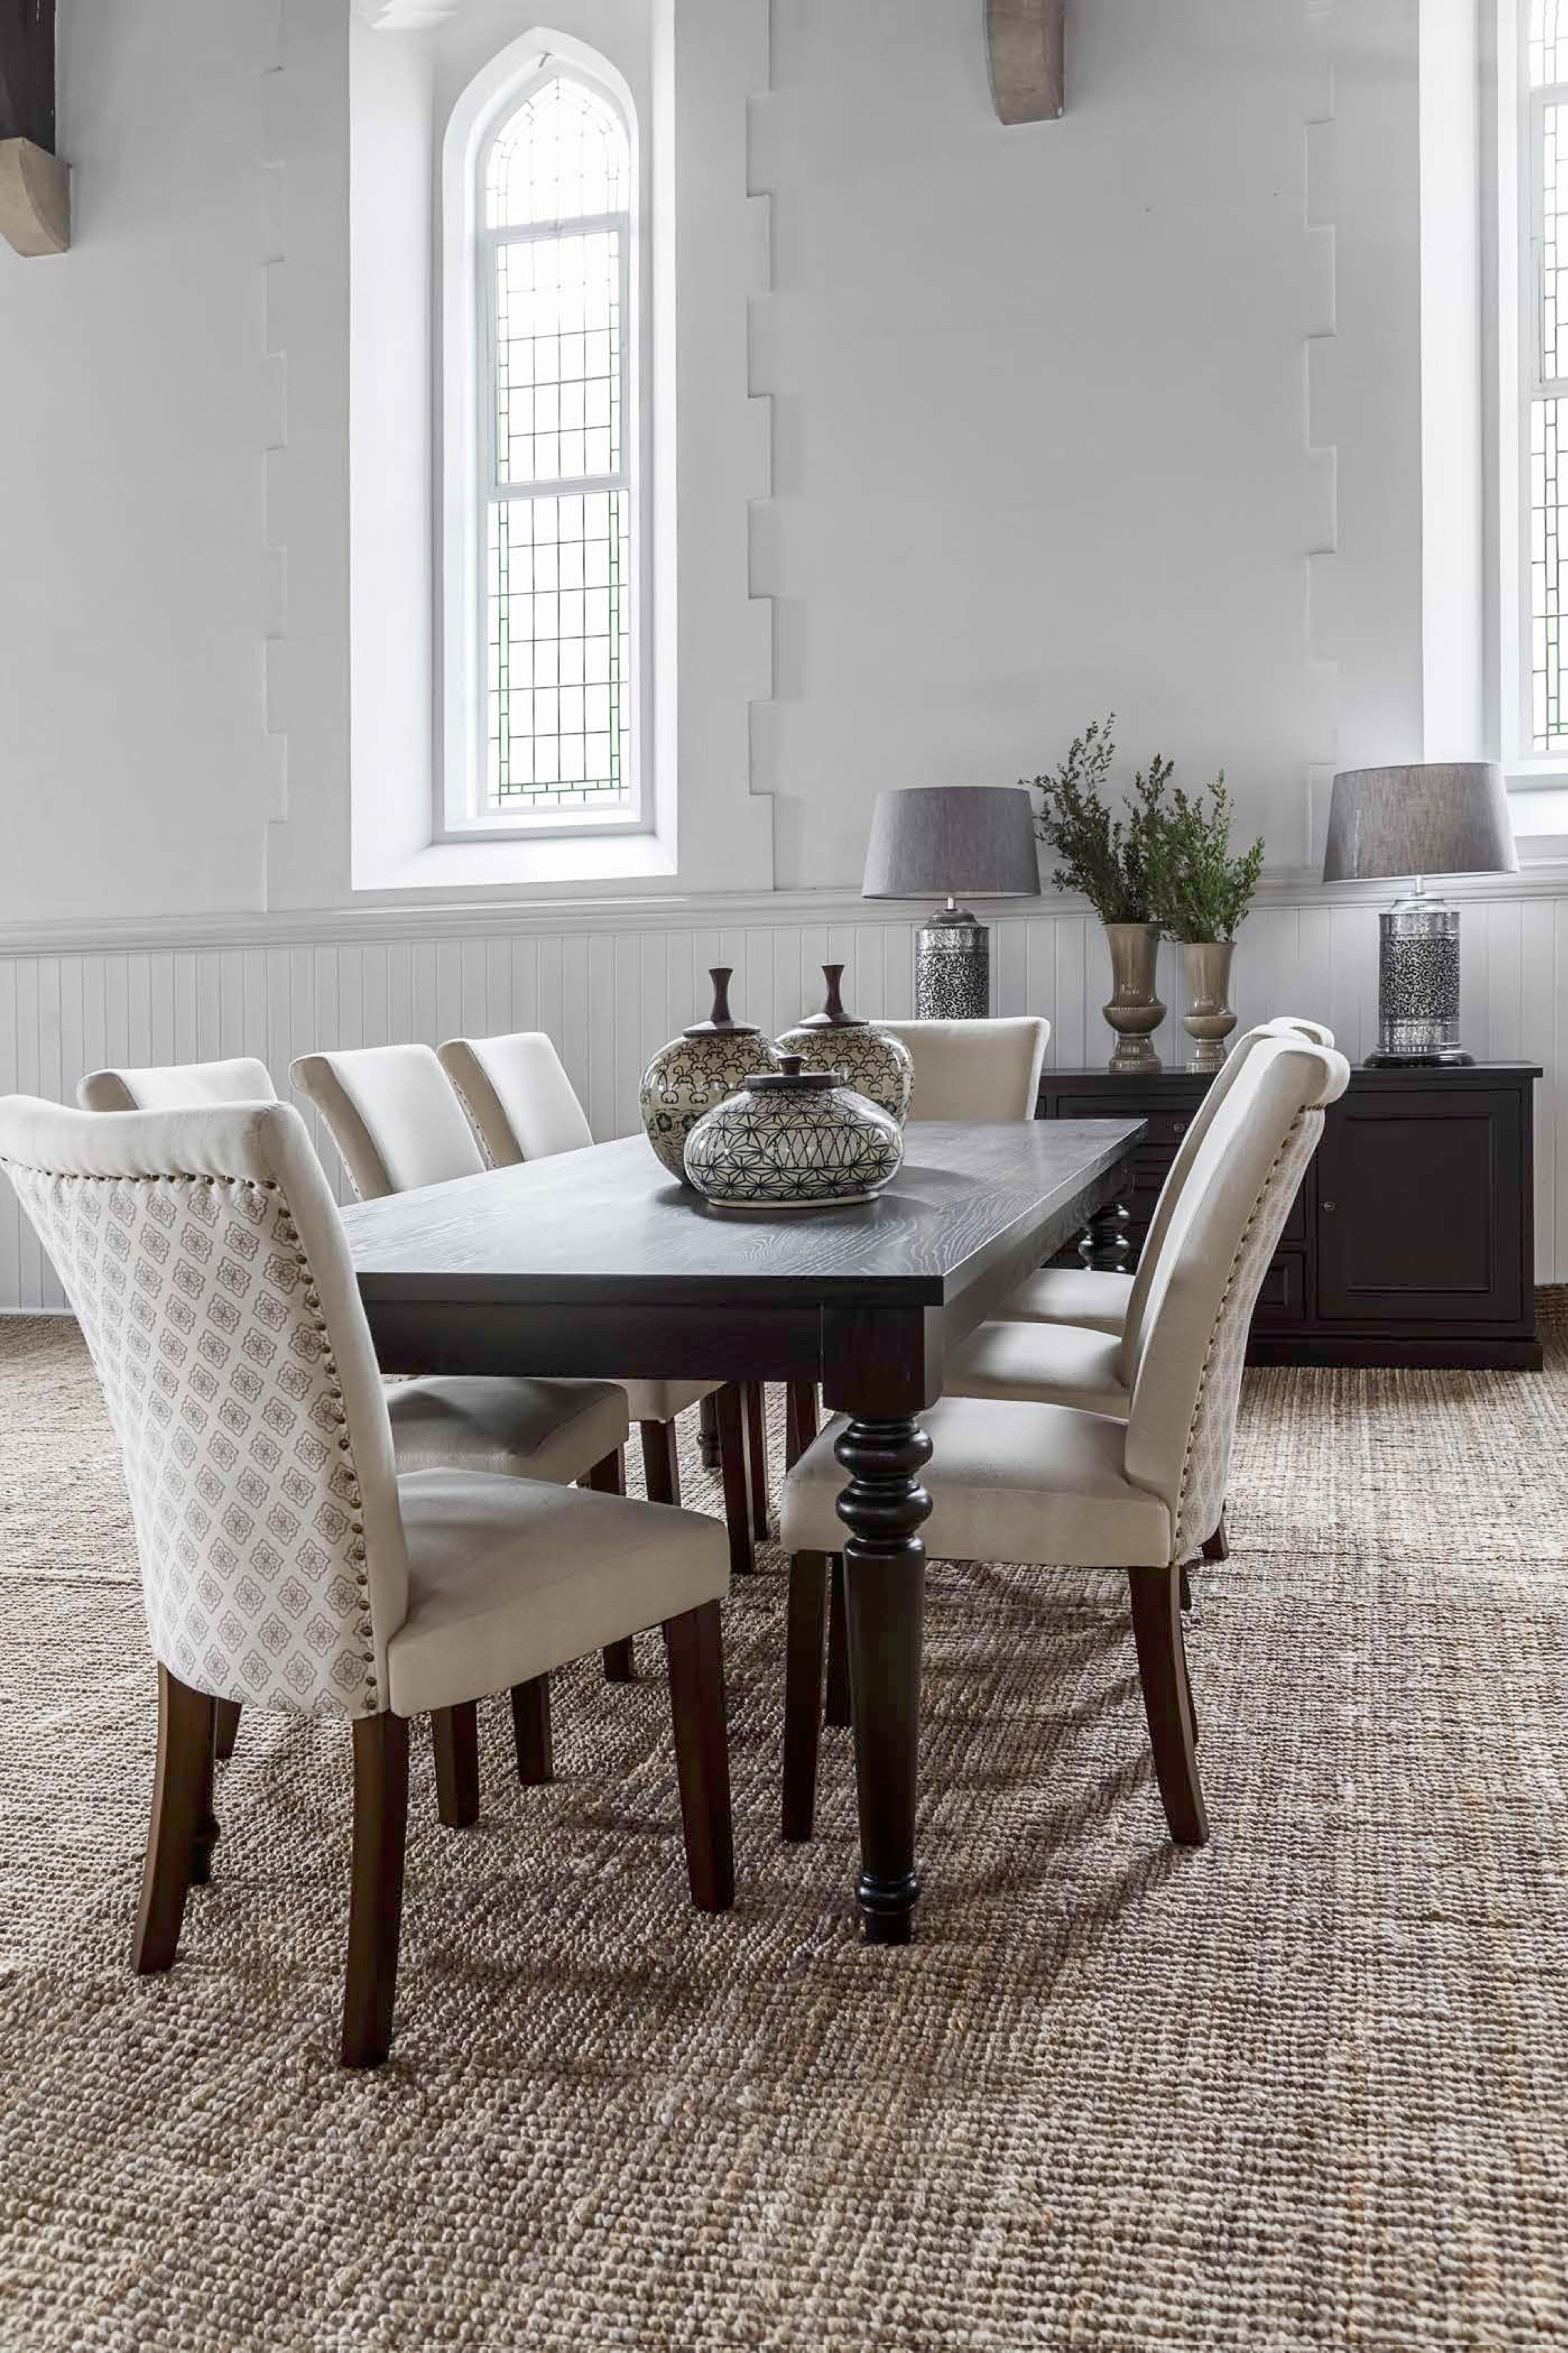 Pin By Coricraft On The Dining Room Dining Room Furniture Modern Dining Room Furniture Design Modern Dining Table